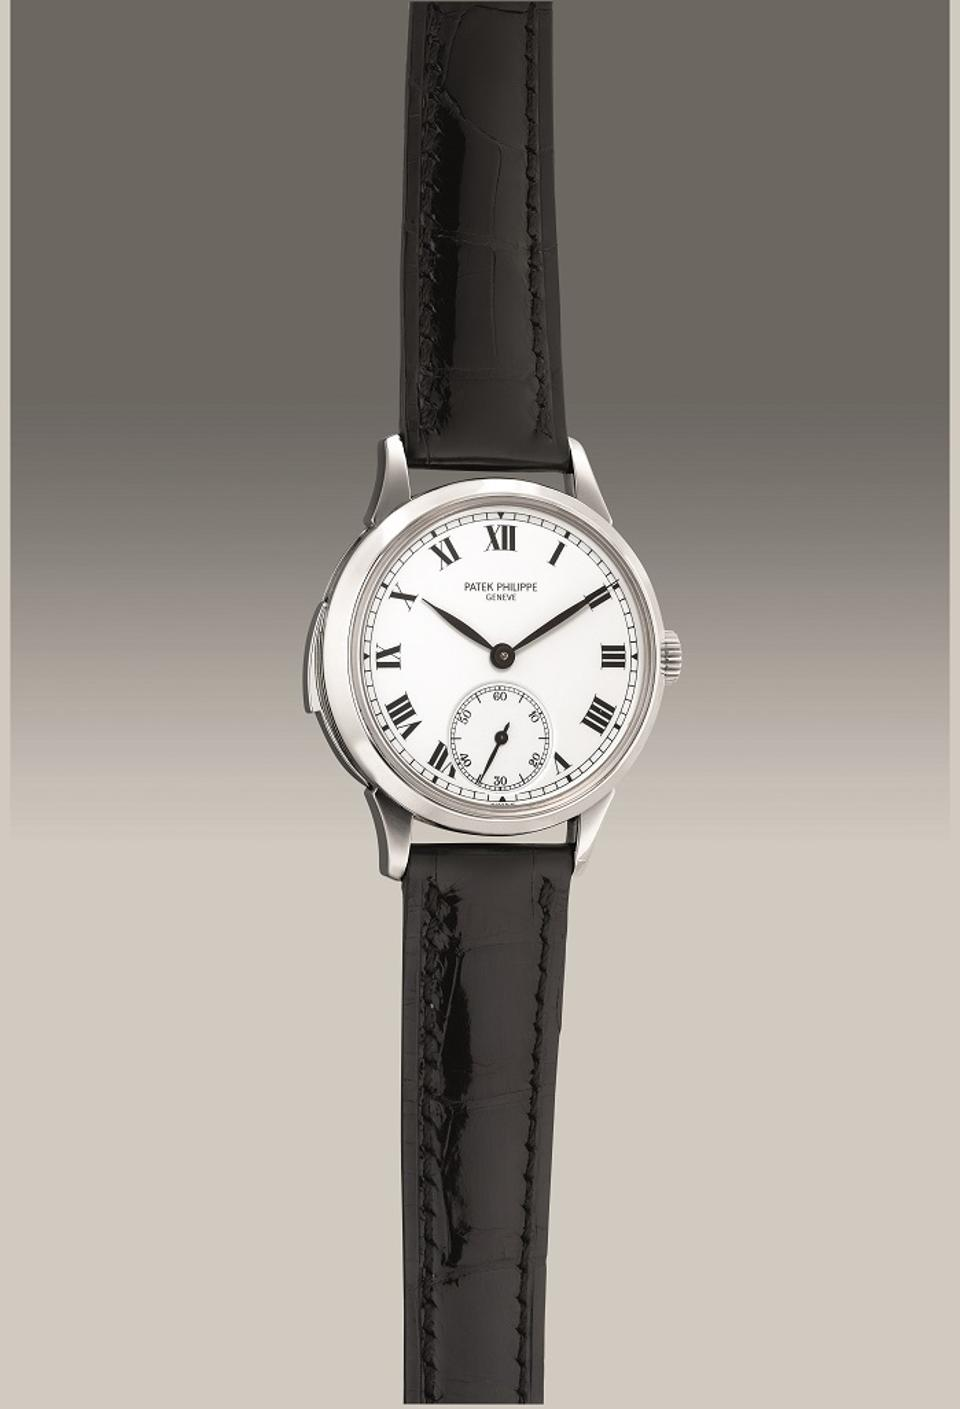 Patek Philippe Reference 3979, 1996, platinum minute repeater wristwatch with enamel dial